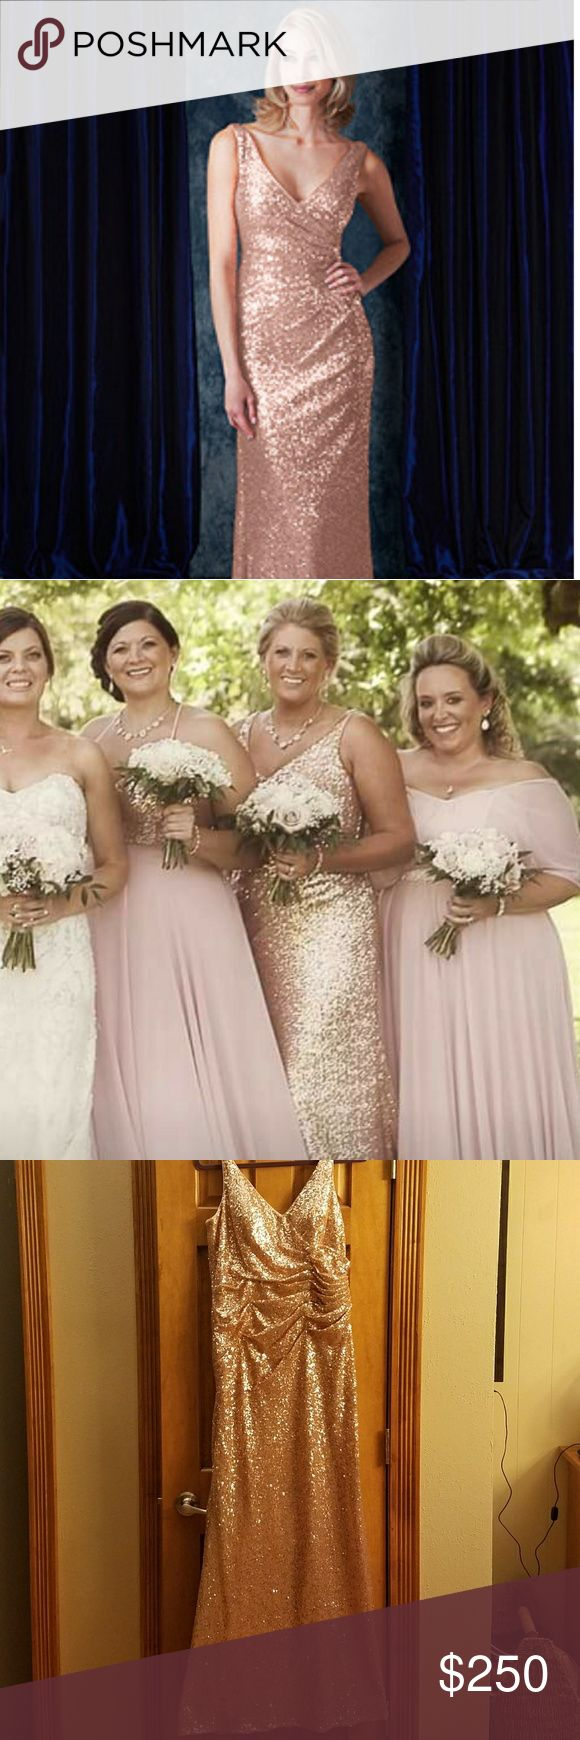 Alfred Angelo Rose Gold Sequin Bridesmaid Dress Alfred Angelo Sapphire Bridesmaid Rose Gold Dress Style 8115L 2017 Collection  All sequins Attached & No Snags Matching Sequin Button Bustle Added to the back to keep the train off the ground after the wedding. Worn for about 4 Hours Paid $343.44 + $50.00 for the Bustle Alfred Angelo Dresses